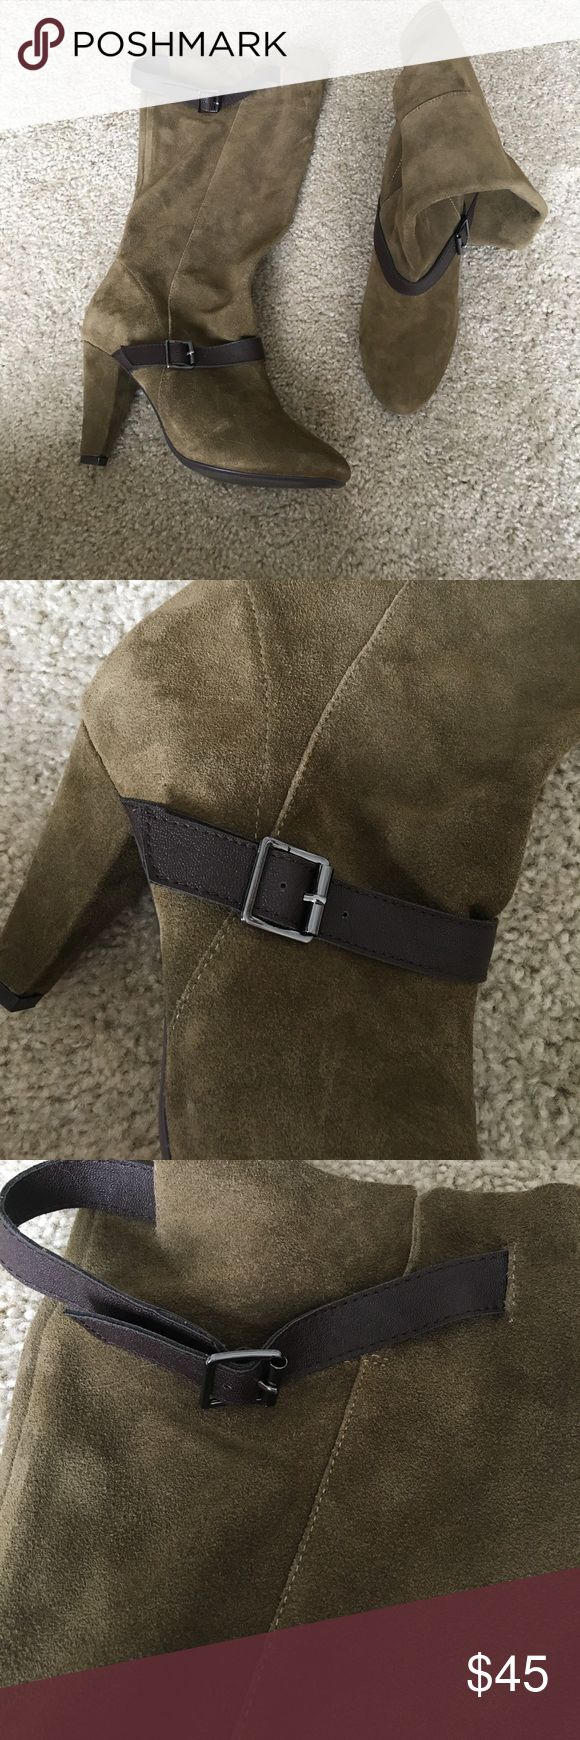 Suede Olive green slouchy boots These are beautiful boots, never worn. There are brown buckle details right below the ankle and then right at the top of the boot. These boots have a slouchy fit and fit on the calve. They do not go up to the knee. 3 inch heel, size 8. Never worn outside- I tried them on several times and walked around the house on them however just never found the time to wear them.  I purchased these at Victoria's Secret online boutique when they sold both clothing and shoes…